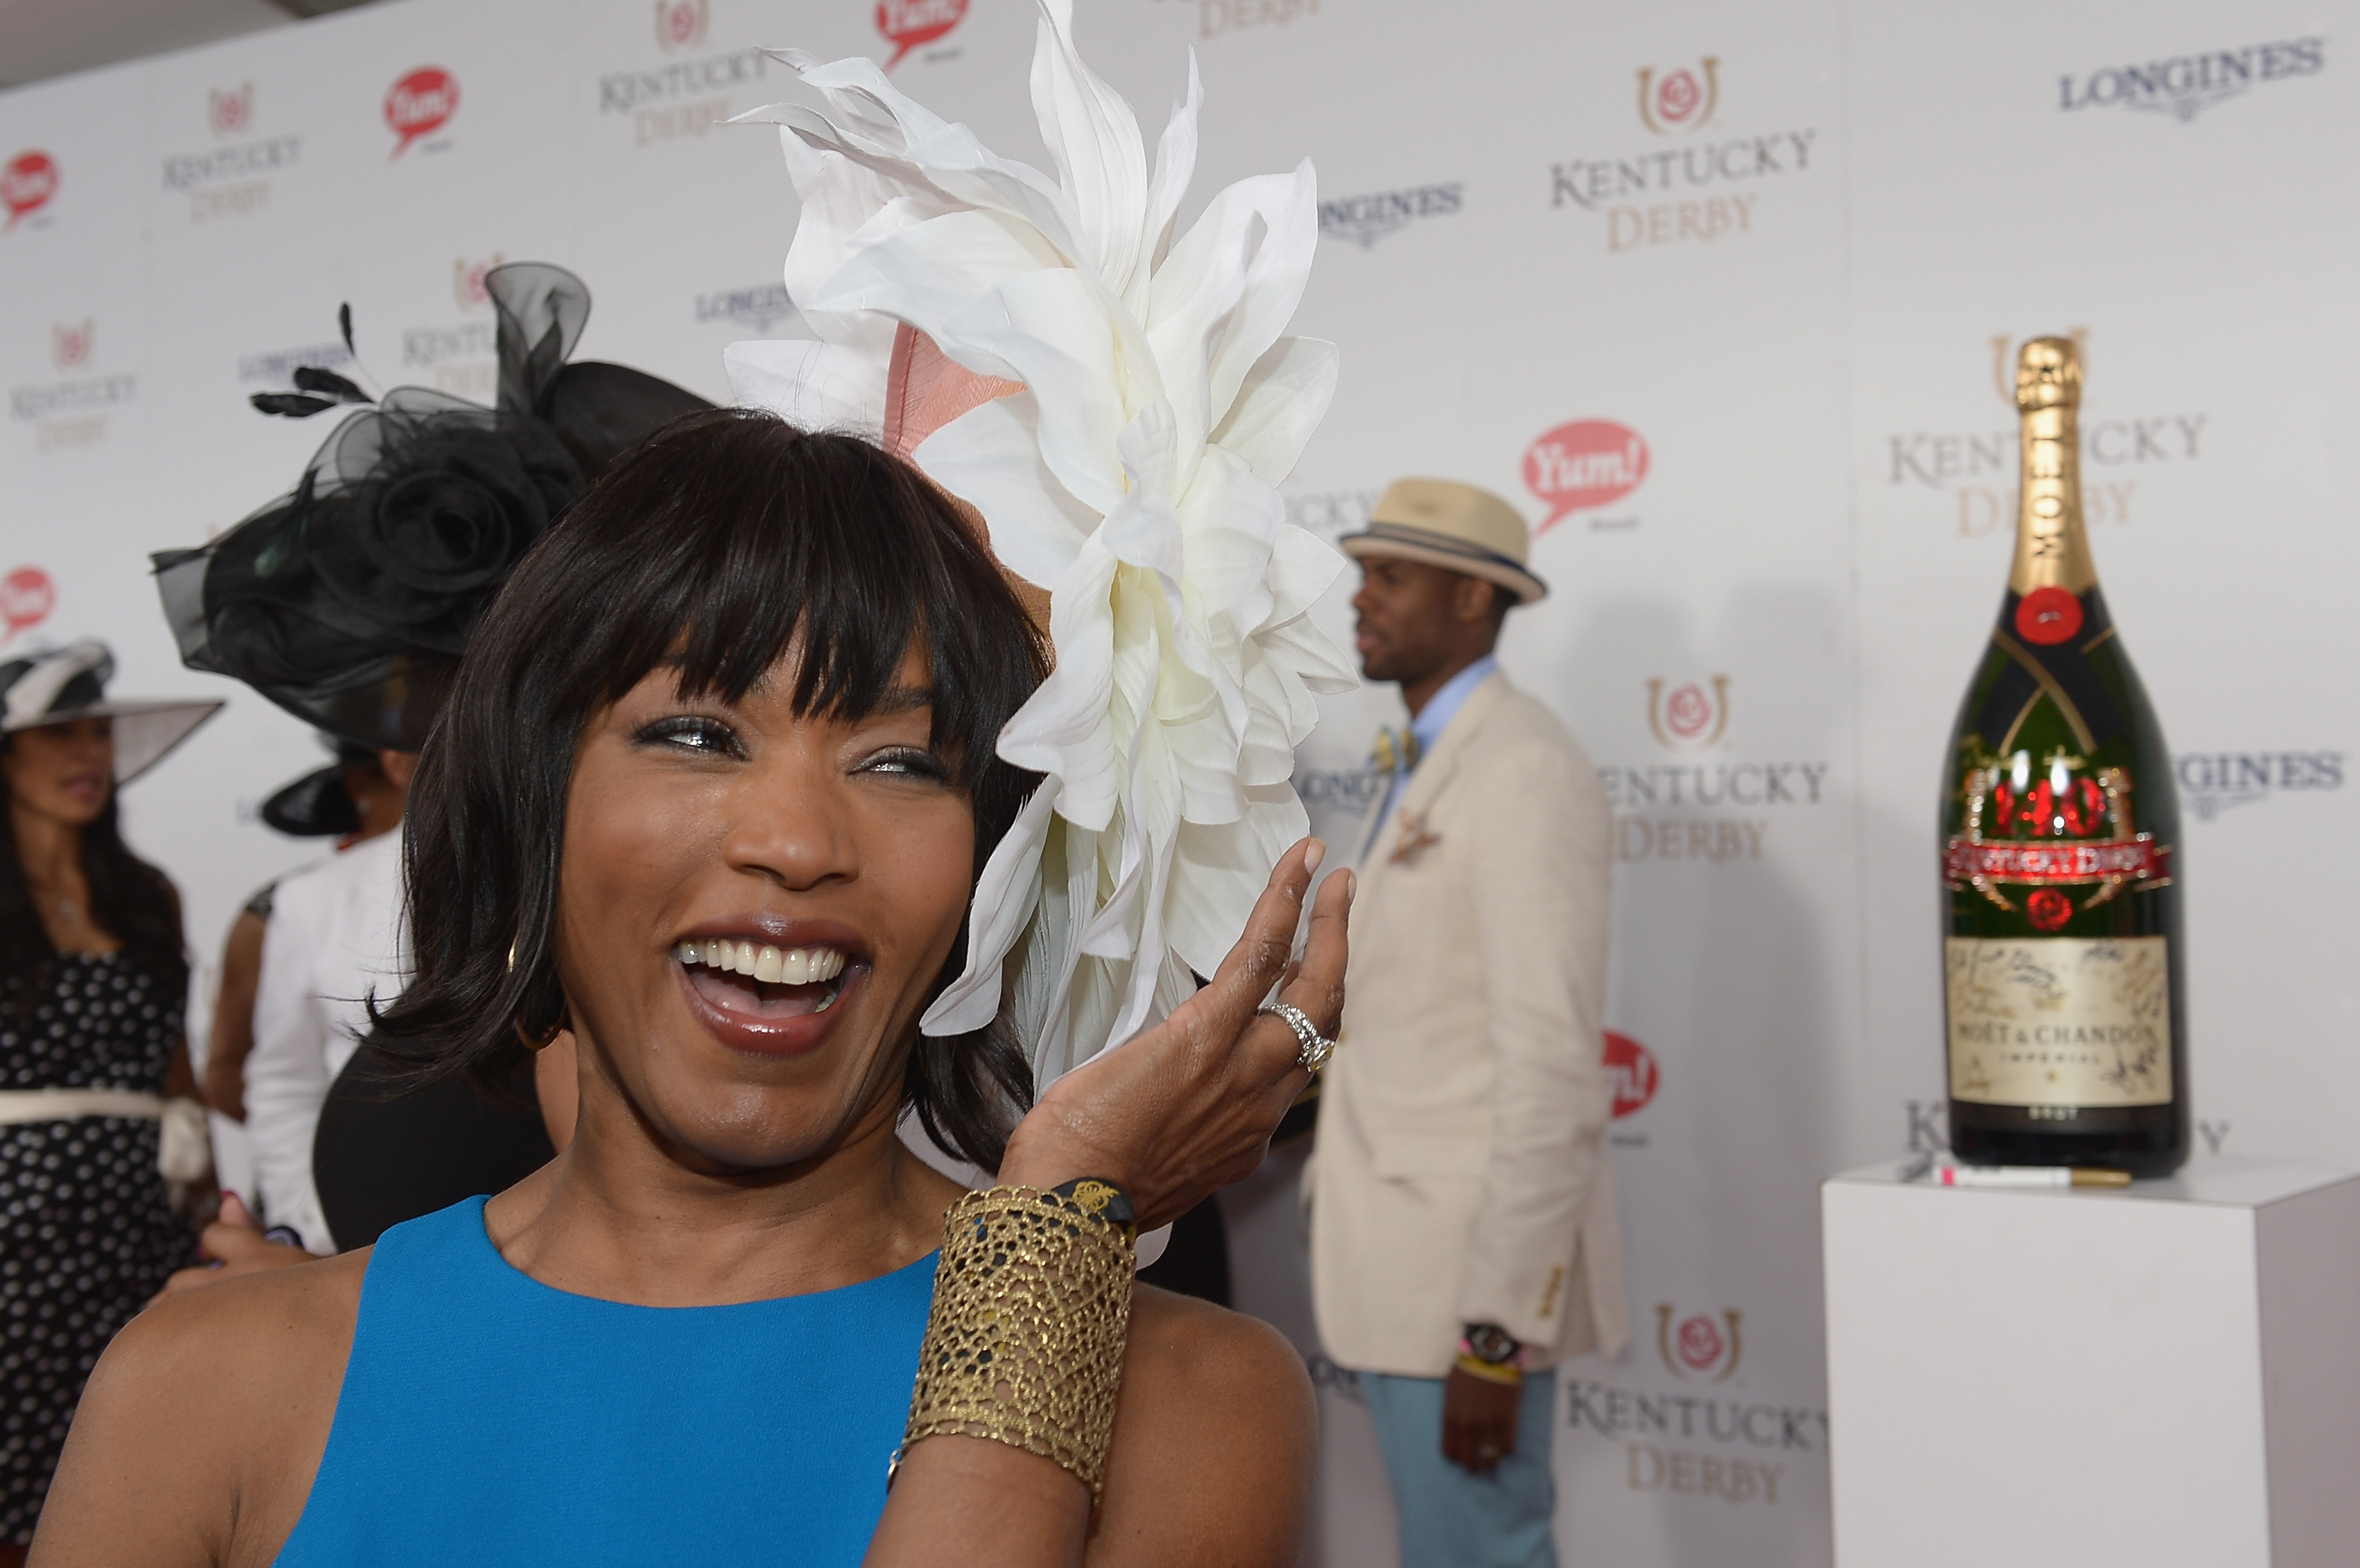 Angela Bassett toasts with Moet & Chandon at the 140th Kentucky Derby at Churchill Downs on May 3, 2014 in Louisville, Kentucky.  (Photo by Gustavo Caballero/Getty Images for Moet & Chandon)